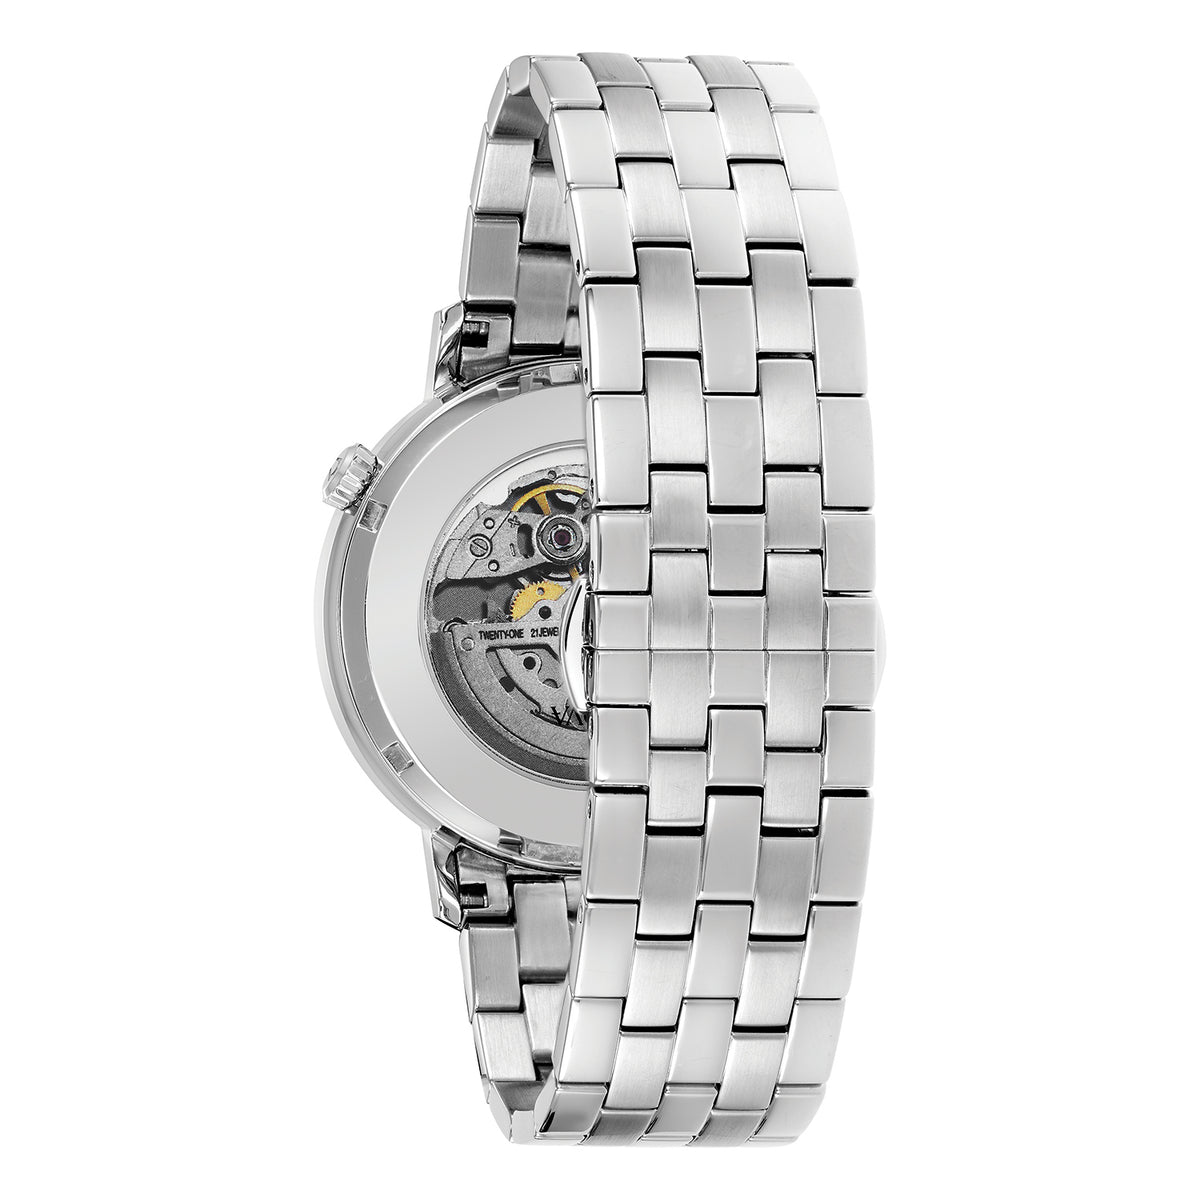 Bulova -Classic Collection Automatic - Stainless Steel